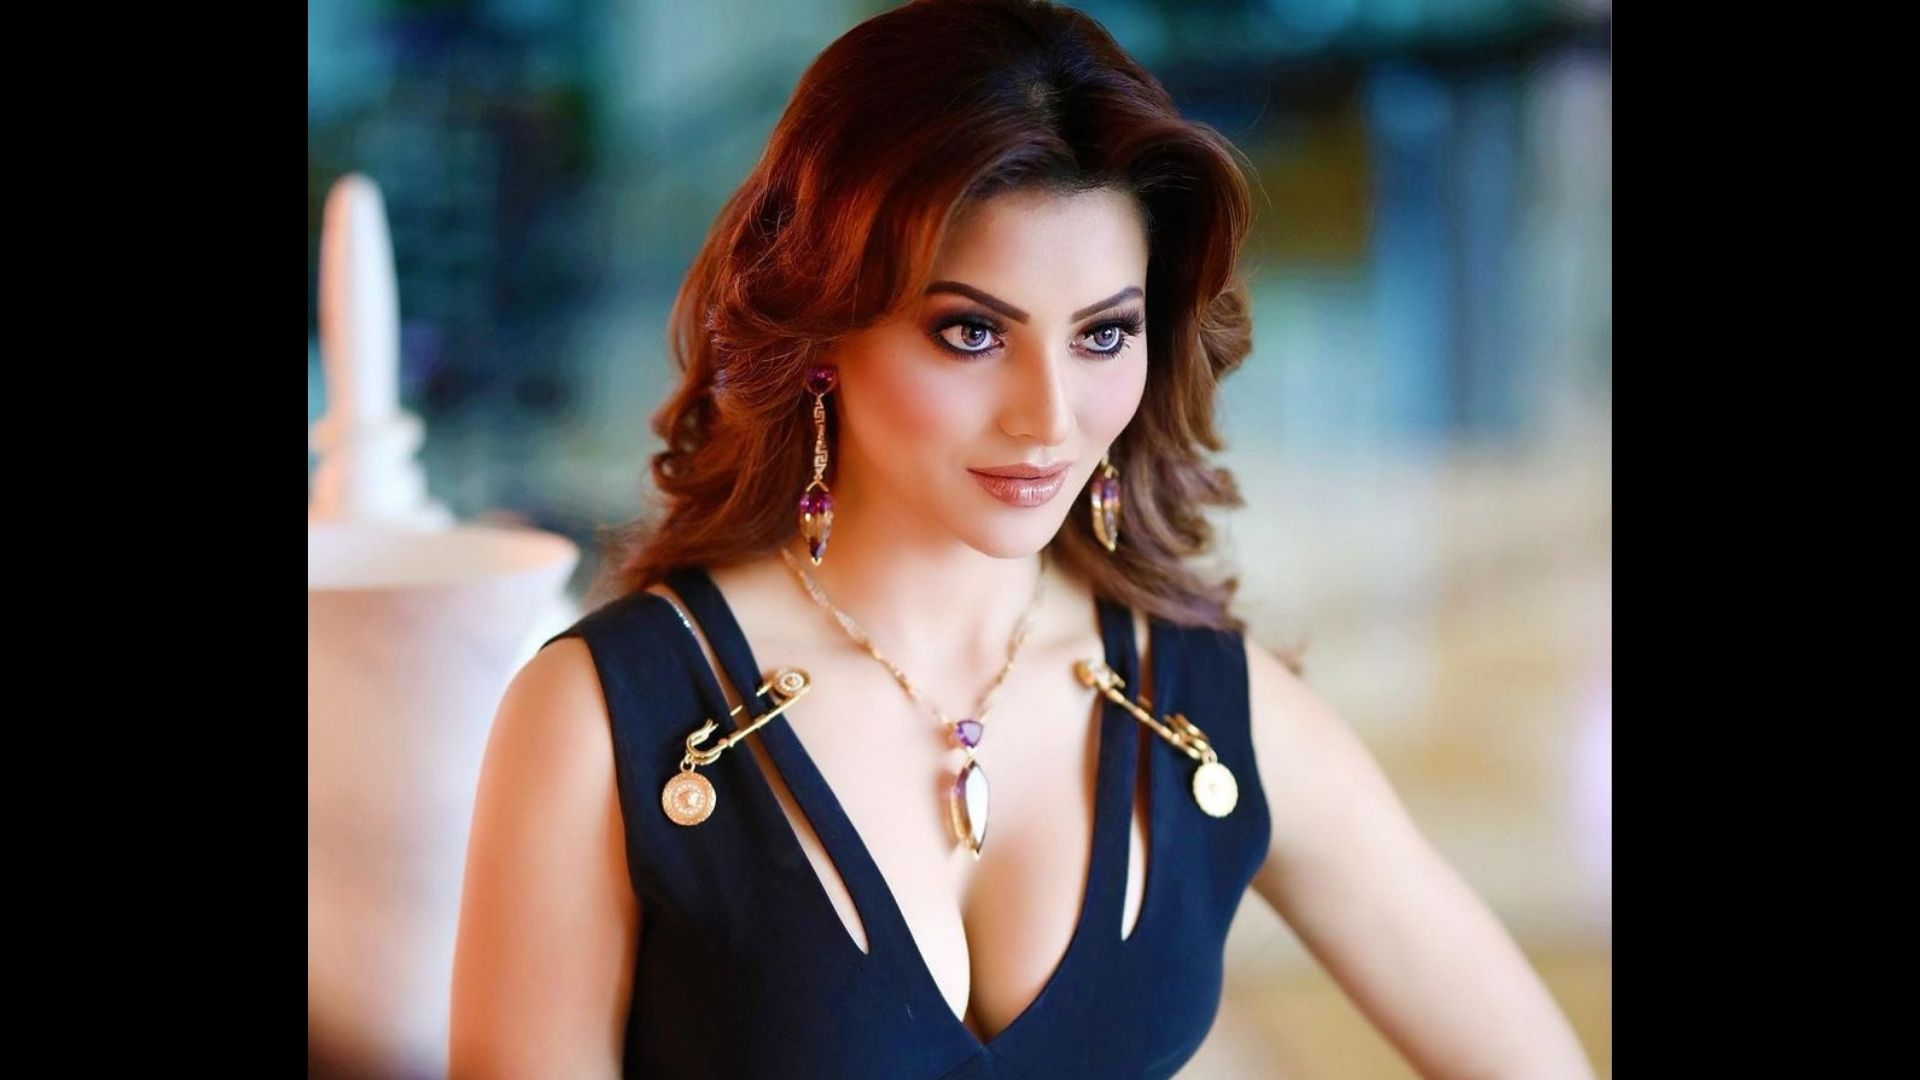 Oo La La! Urvashi Rautela Makes Heads Turn In A Golden Deep Neck Gown; We're Stunned To Know How Costliest The Gown Is- EXCLUSIVE